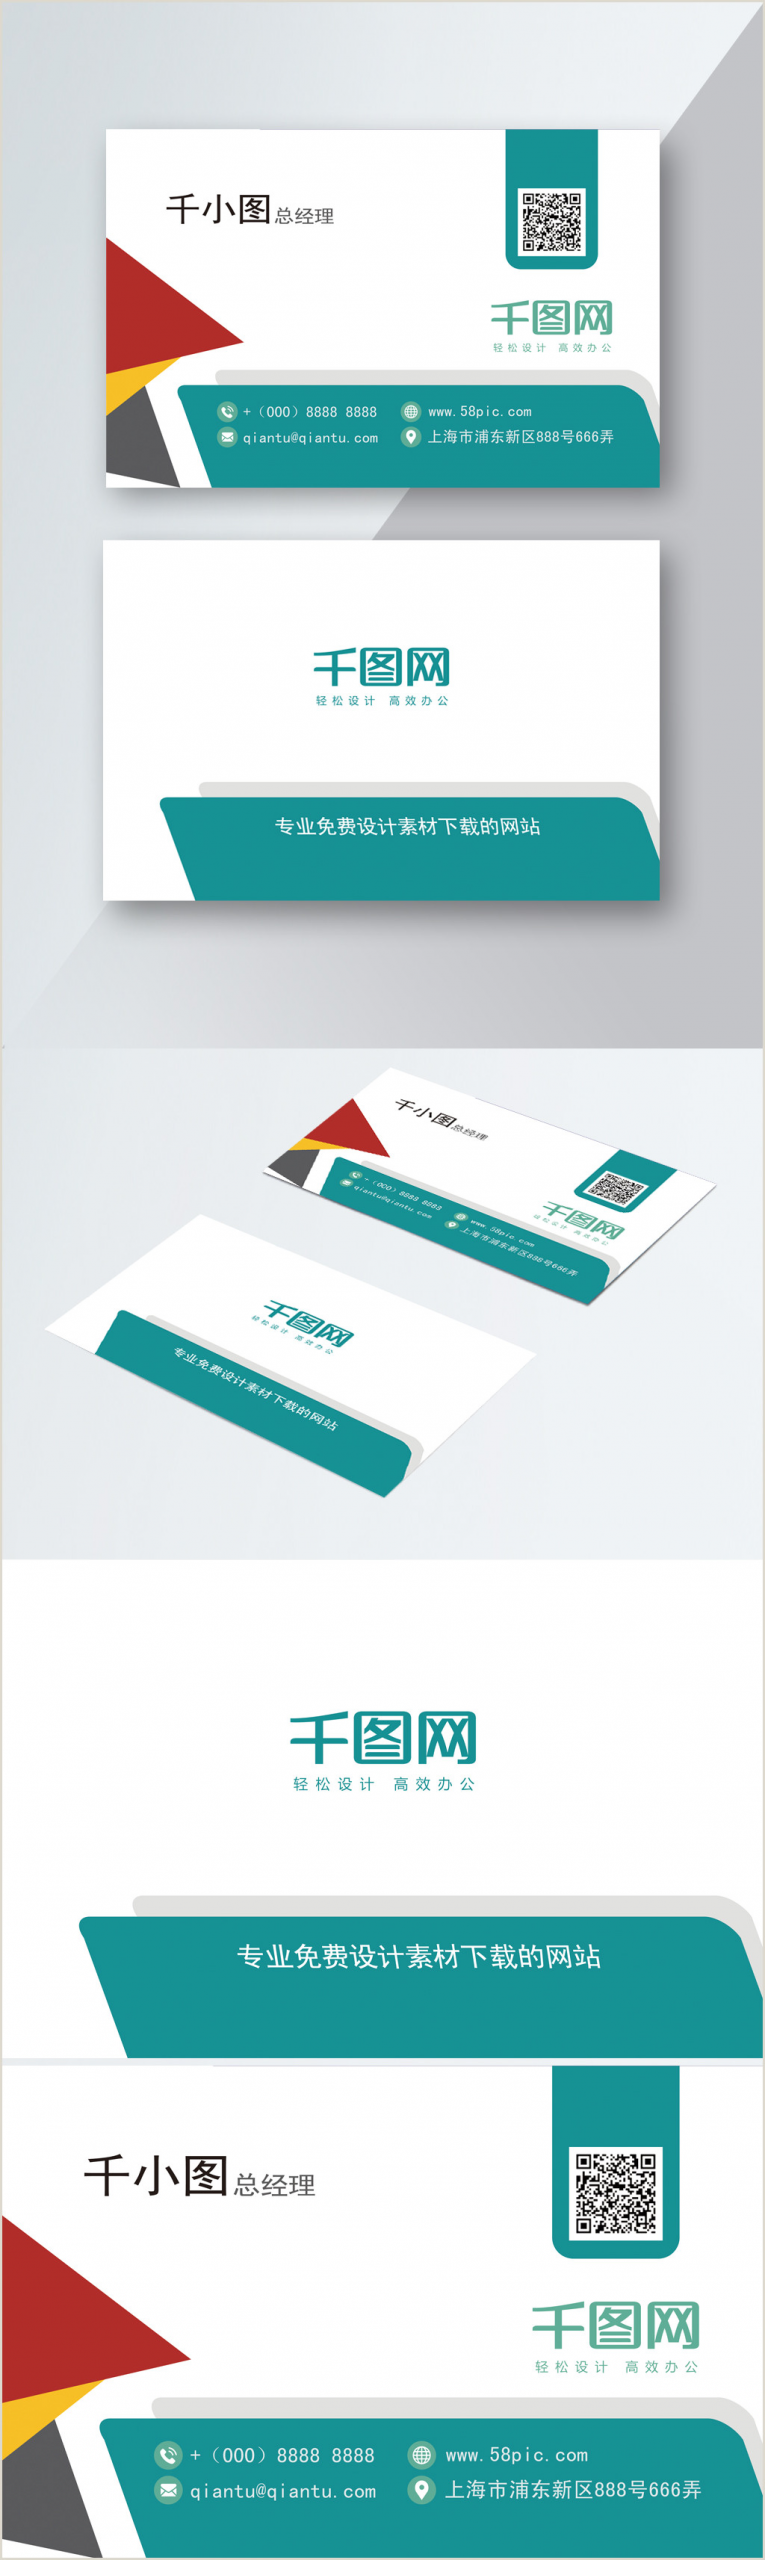 Unique Business Card Unique Business Card Template Image Picture Free